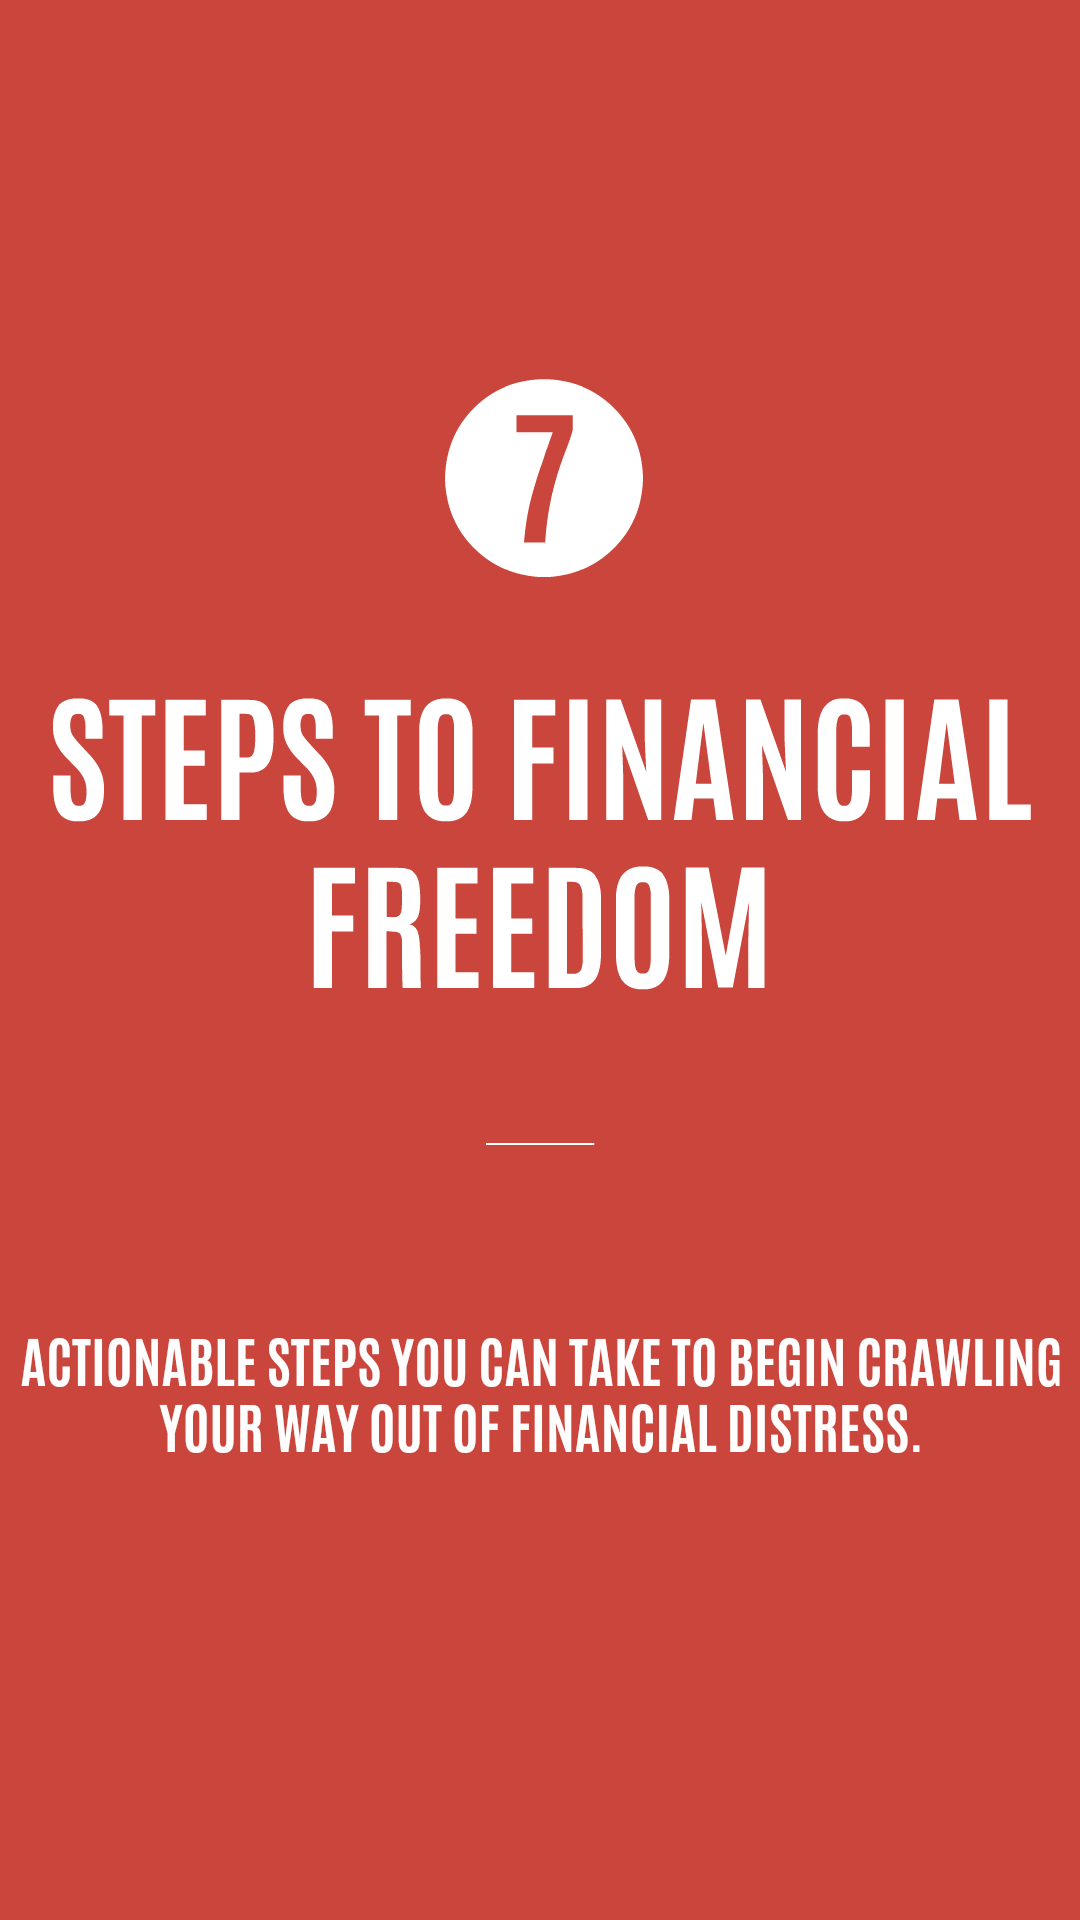 If you're in financial distress and not sure how to get out, these 7 steps to financial freedom are a great place to start. These are actionable steps you can take to get your life back.